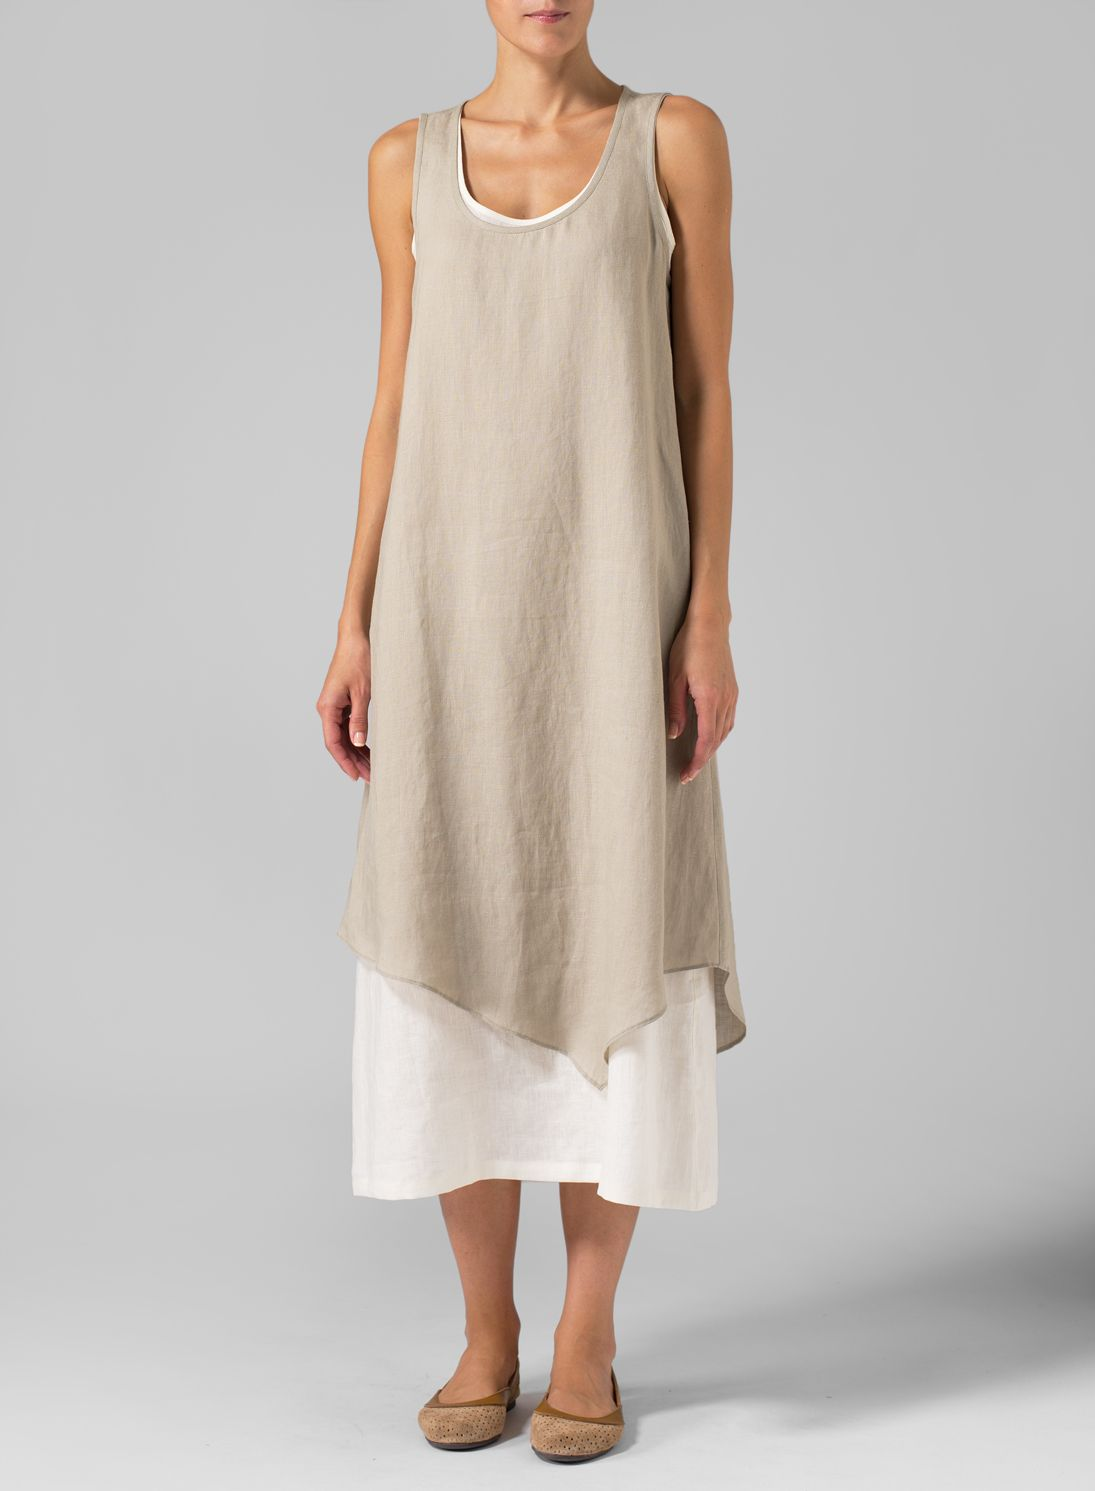 Linen double layered long dress casual cool simple and regular